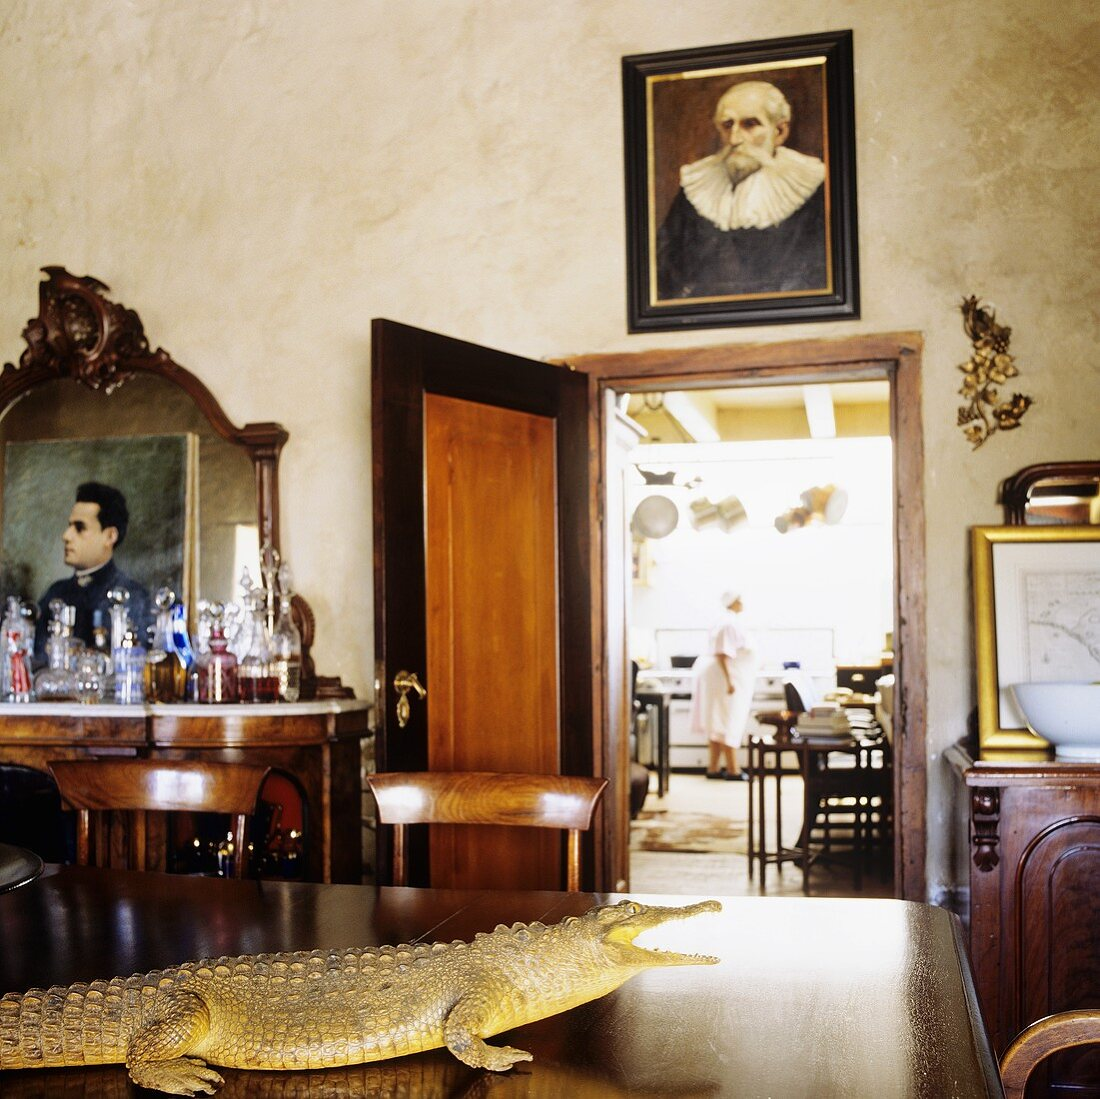 A living room in a South African country house - a stuffed crocodile on a table, family portraits and an open kitchen door